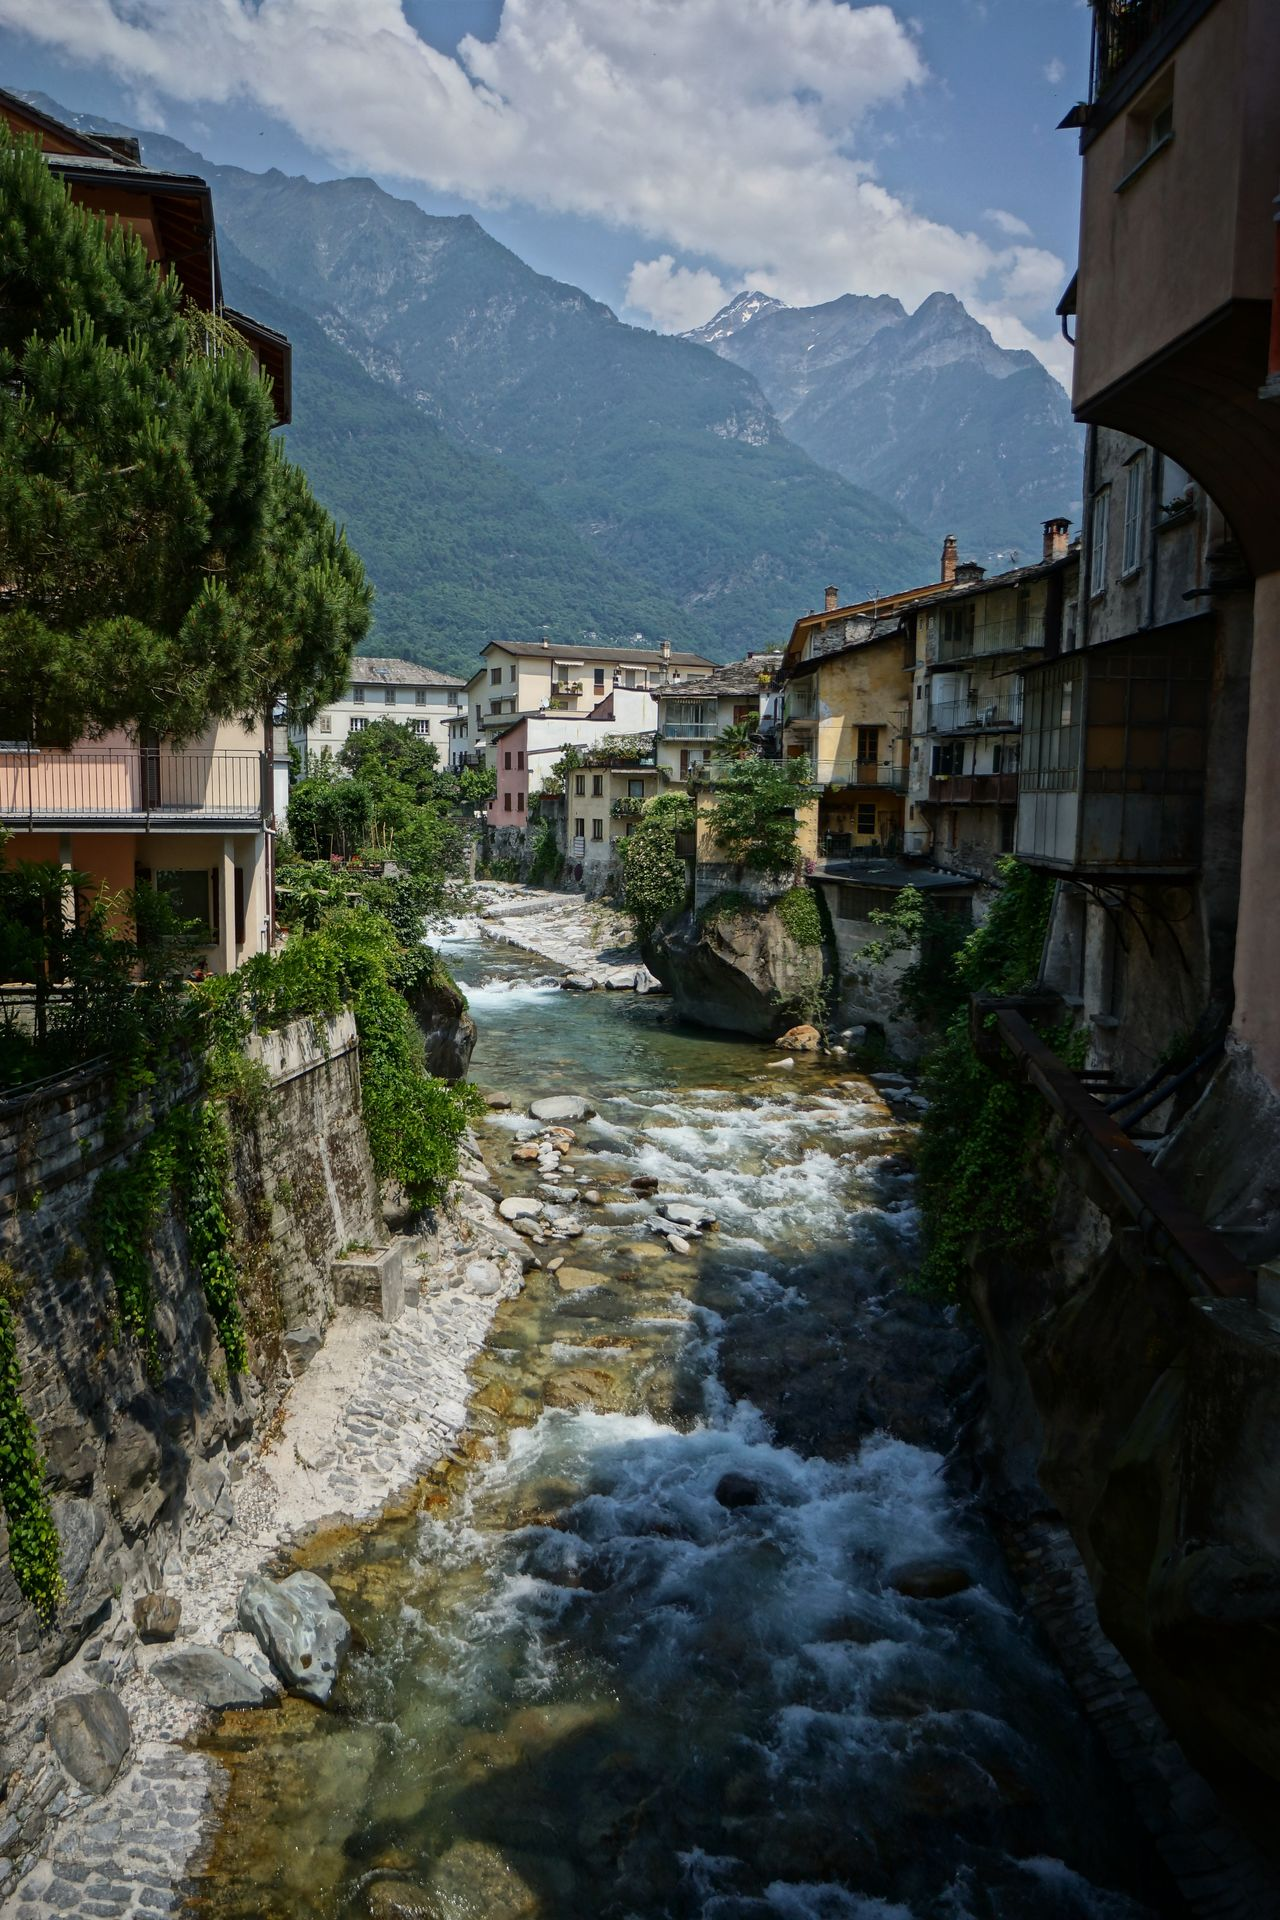 Chiavenna withe River Mera Architecture Building Exterior Built Structure Day Italy Landscape Lombardei Mountain Nature No People Outdoors Schweizer Alpen Sky Tree Village Water